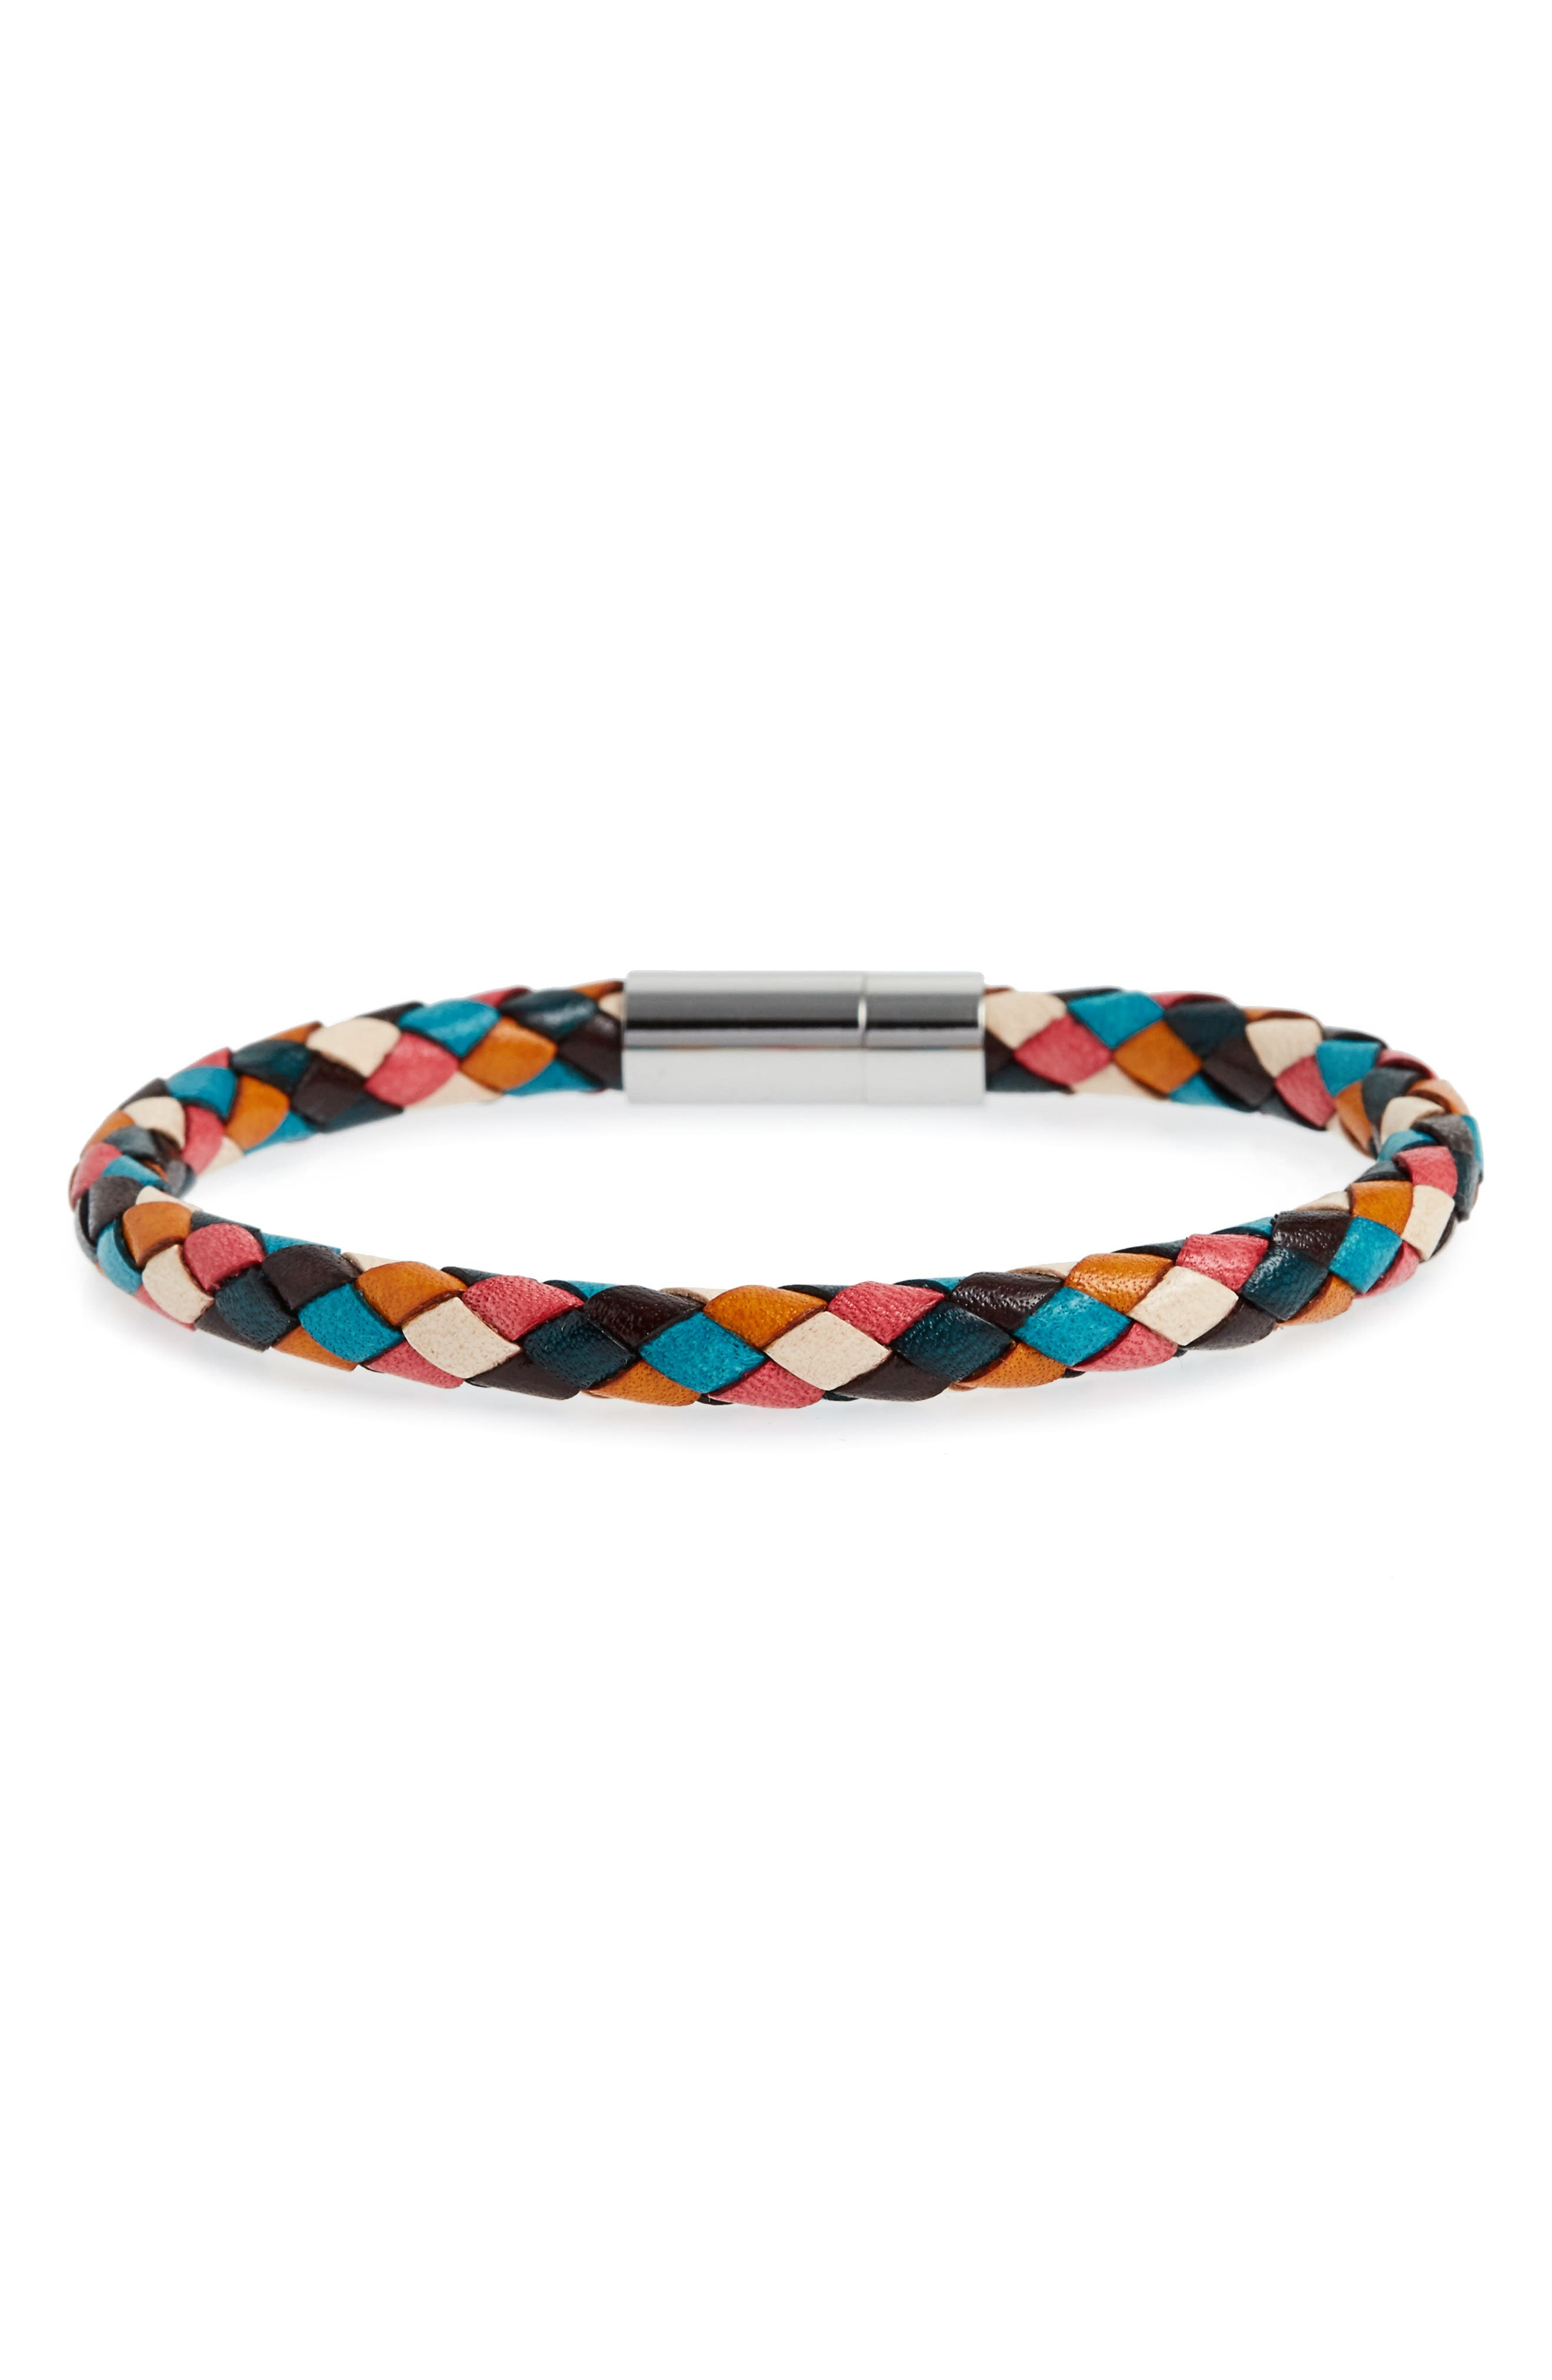 Woven Leather Bracelet,                             Main thumbnail 1, color,                             Multi